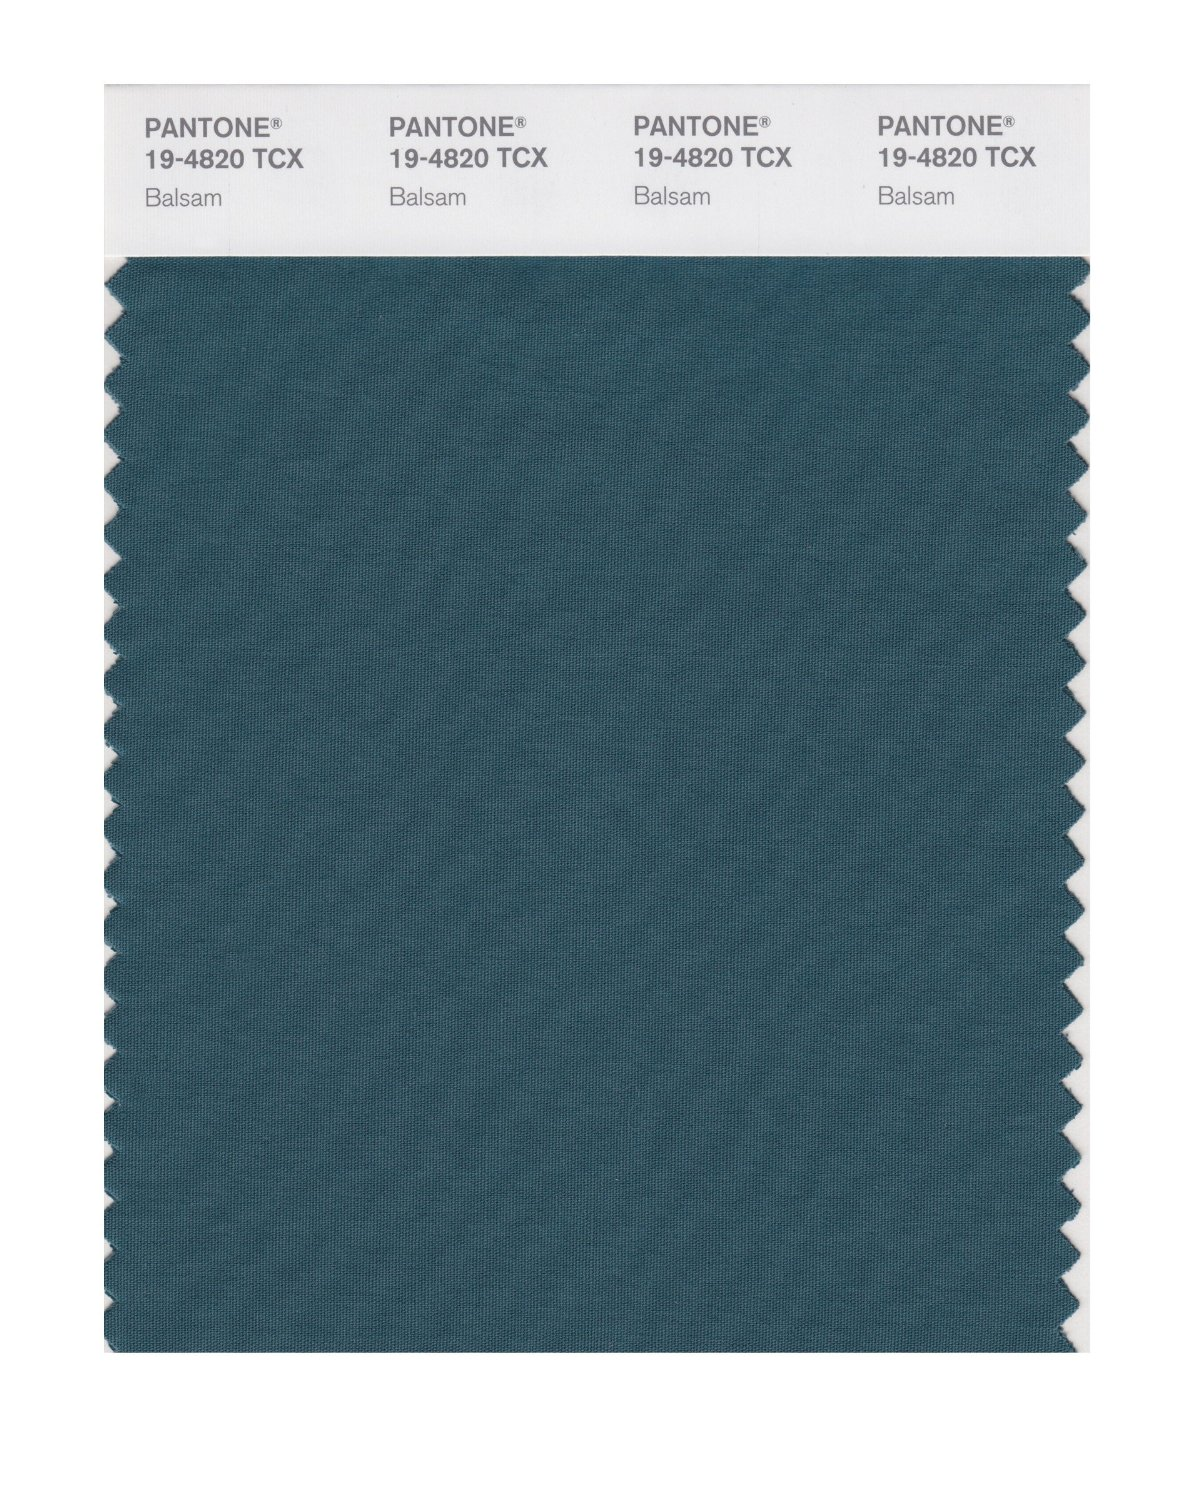 Pantone Smart Swatch 19-4820 Balsam